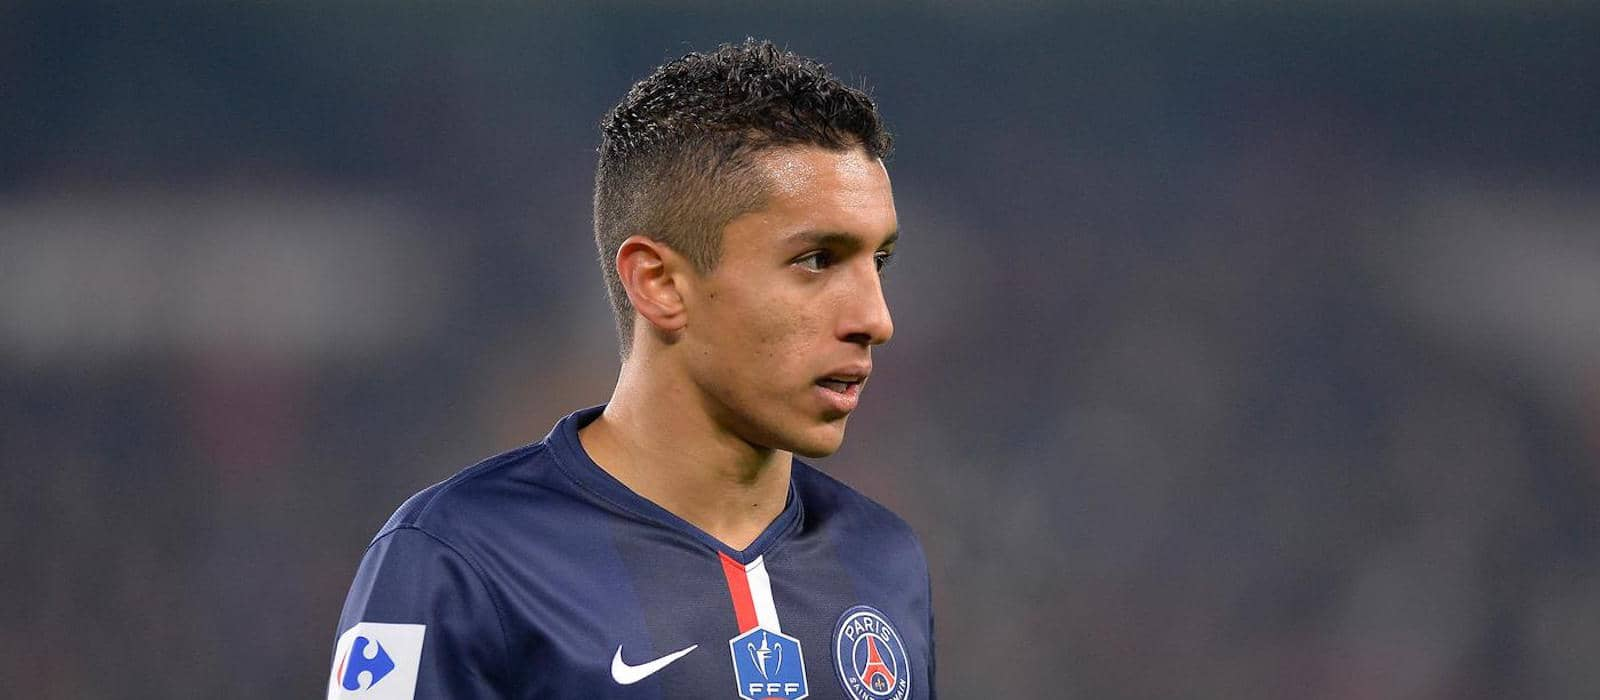 Manchester United target Marquinhos signs new PSG contract until 2022